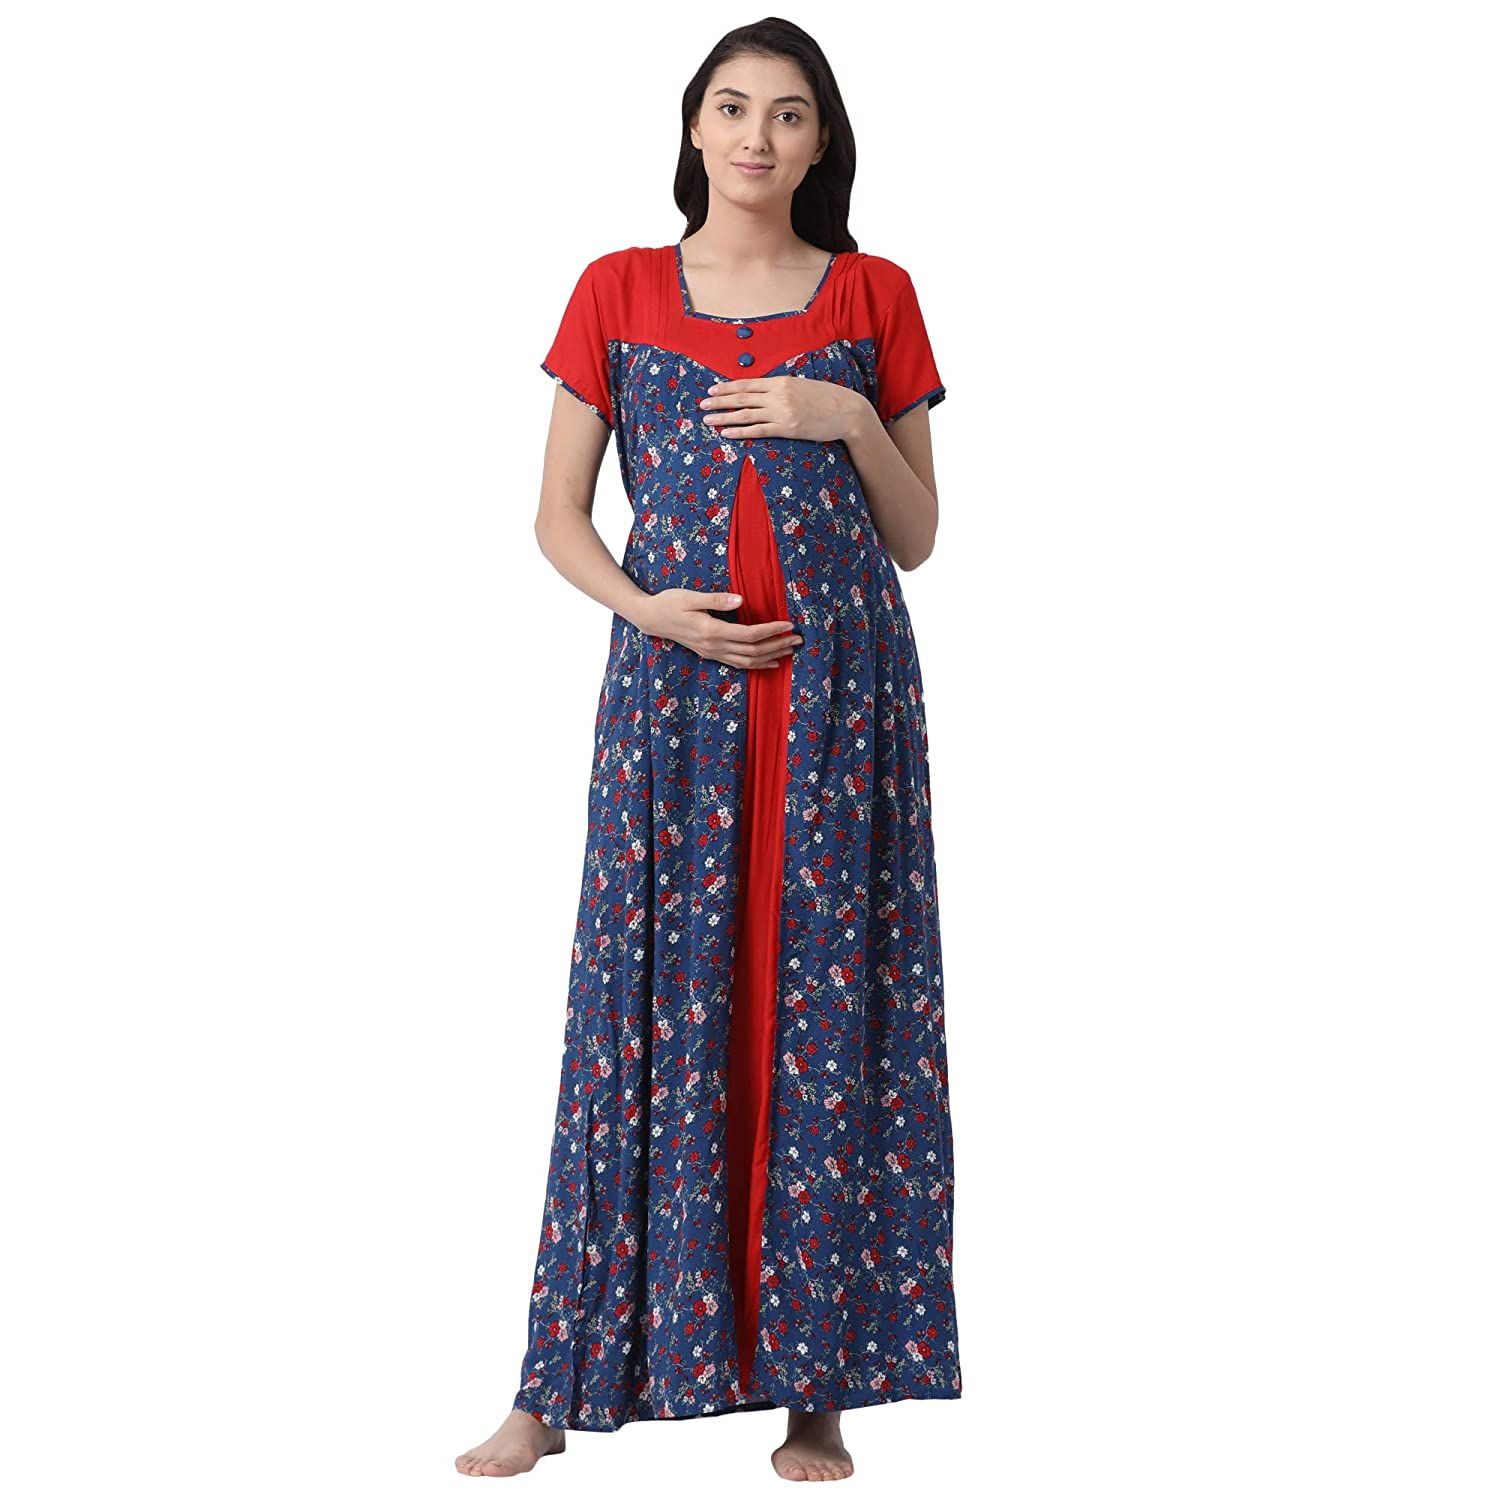 bba570b0da4 GOLDSTROMS Minelli Women's Full Length Rayon Fabric Maternity/Nursing/Feeding  Gown: Amazon.in: Clothing & Accessories